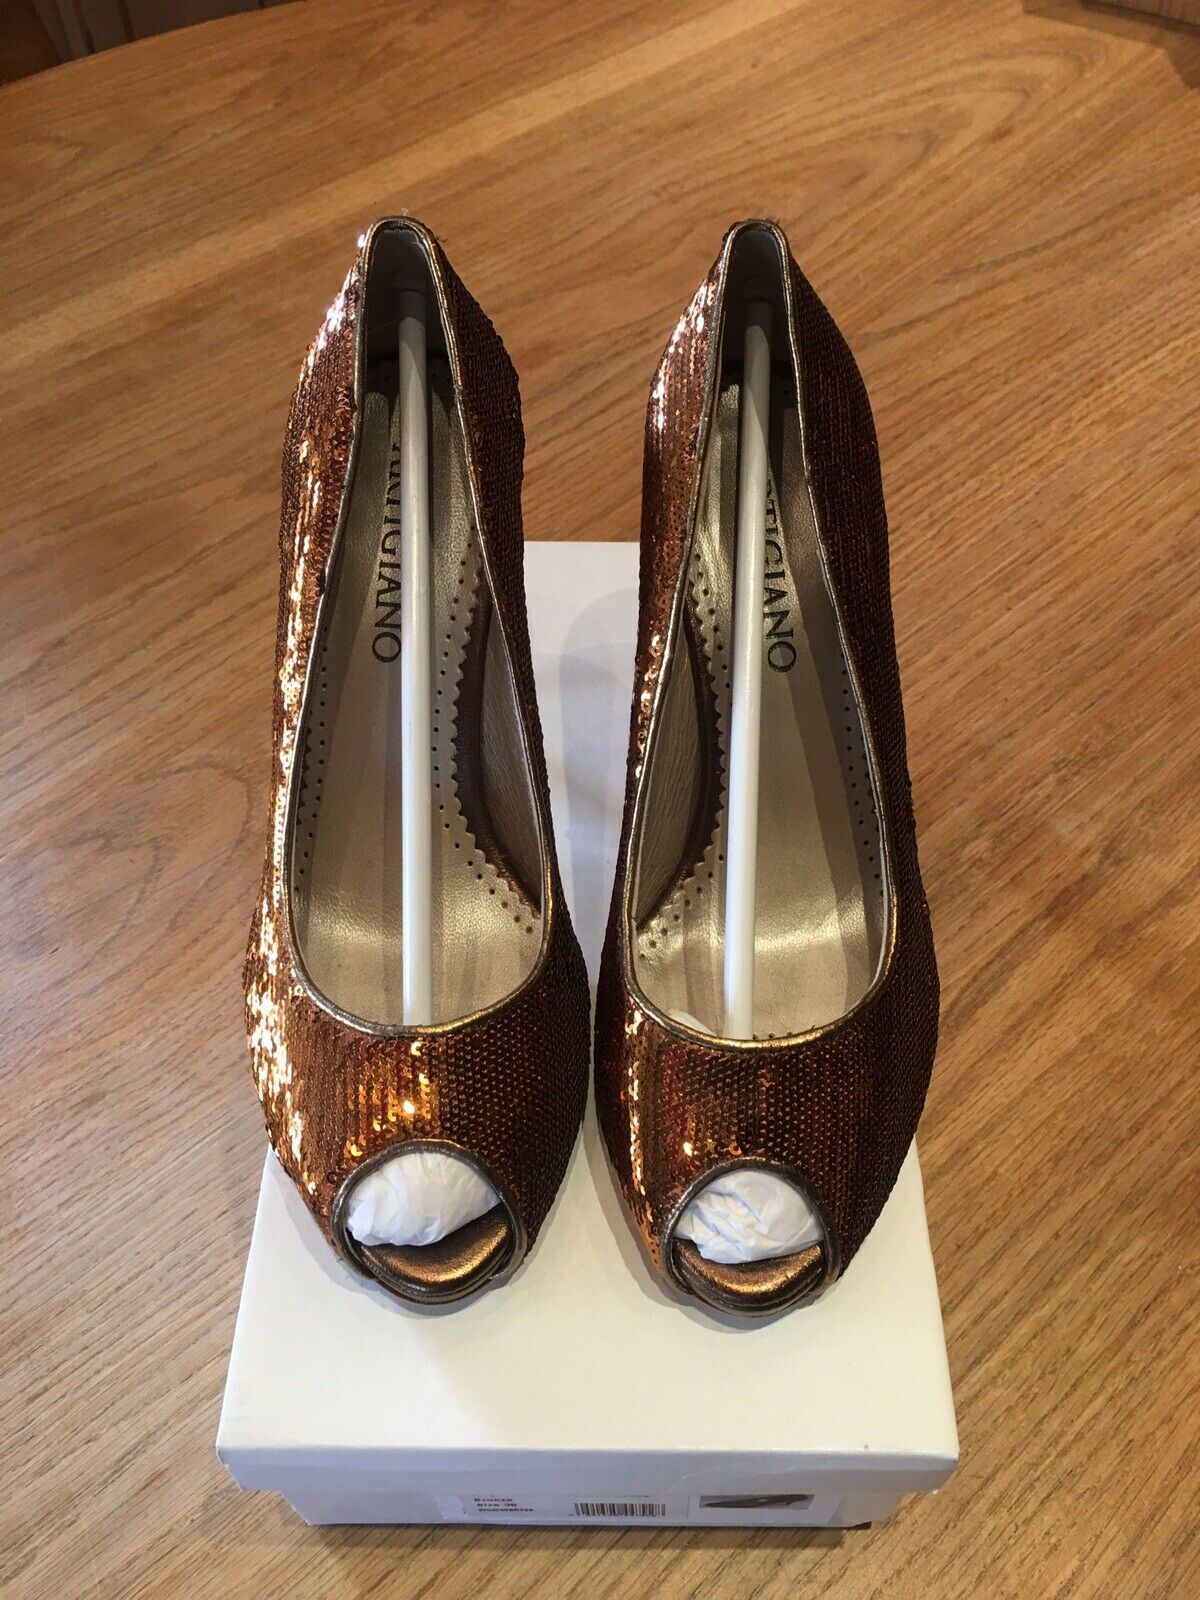 Bronze Elegant Peep-toe Court shoes From Designer Artigiano Size 6 - 39